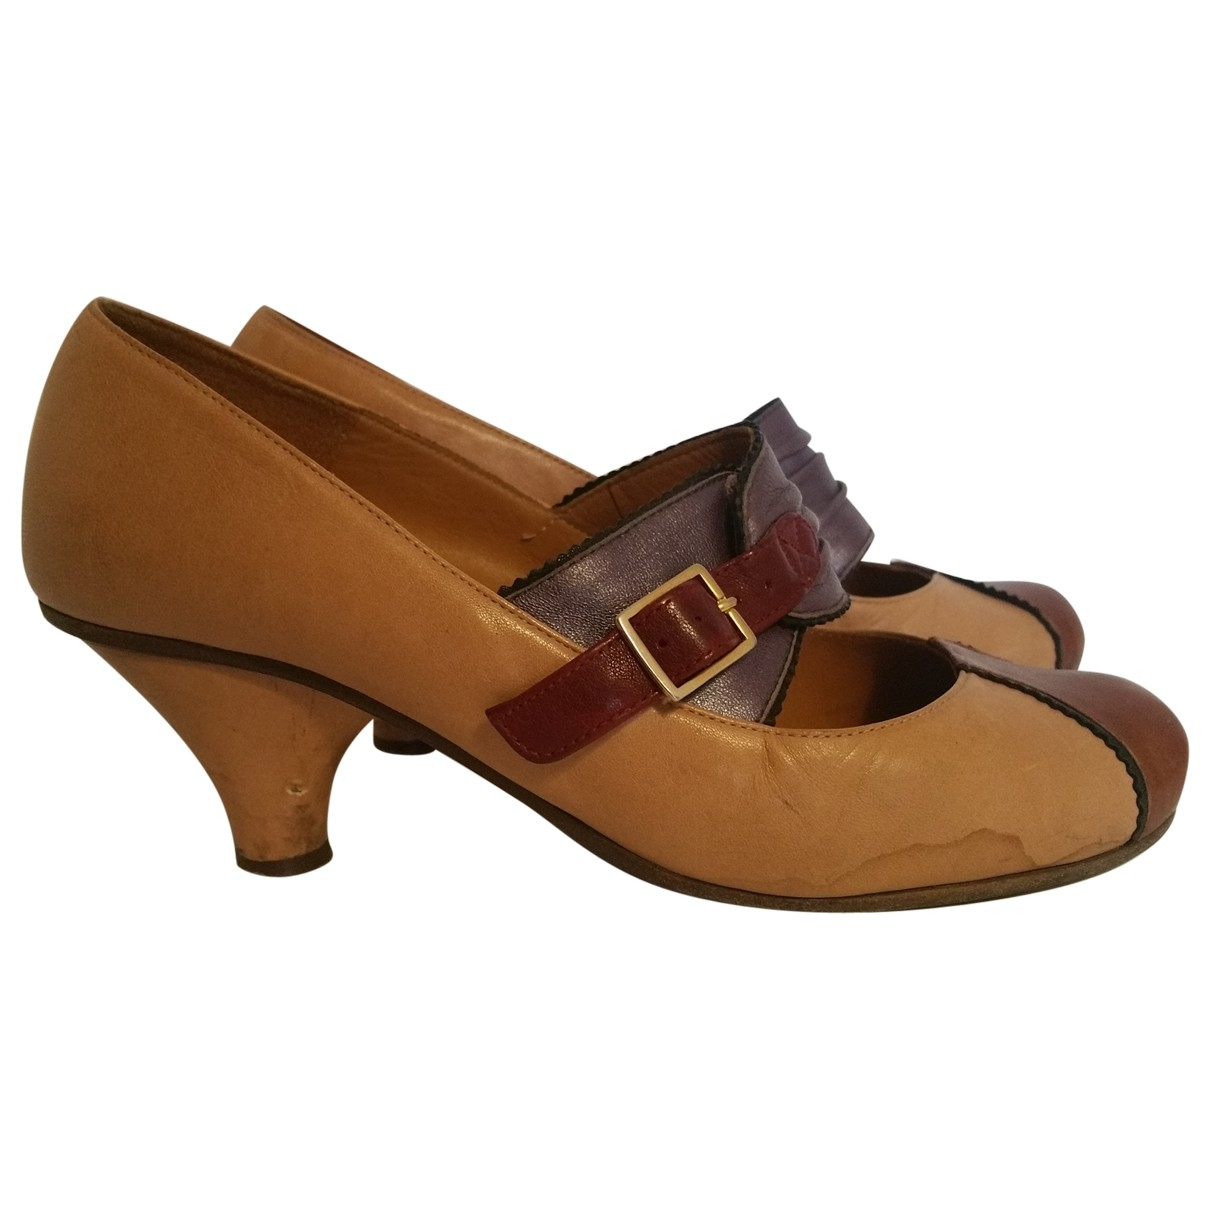 Chie Mihara \N Pink Leather Heels for Women 38 EU